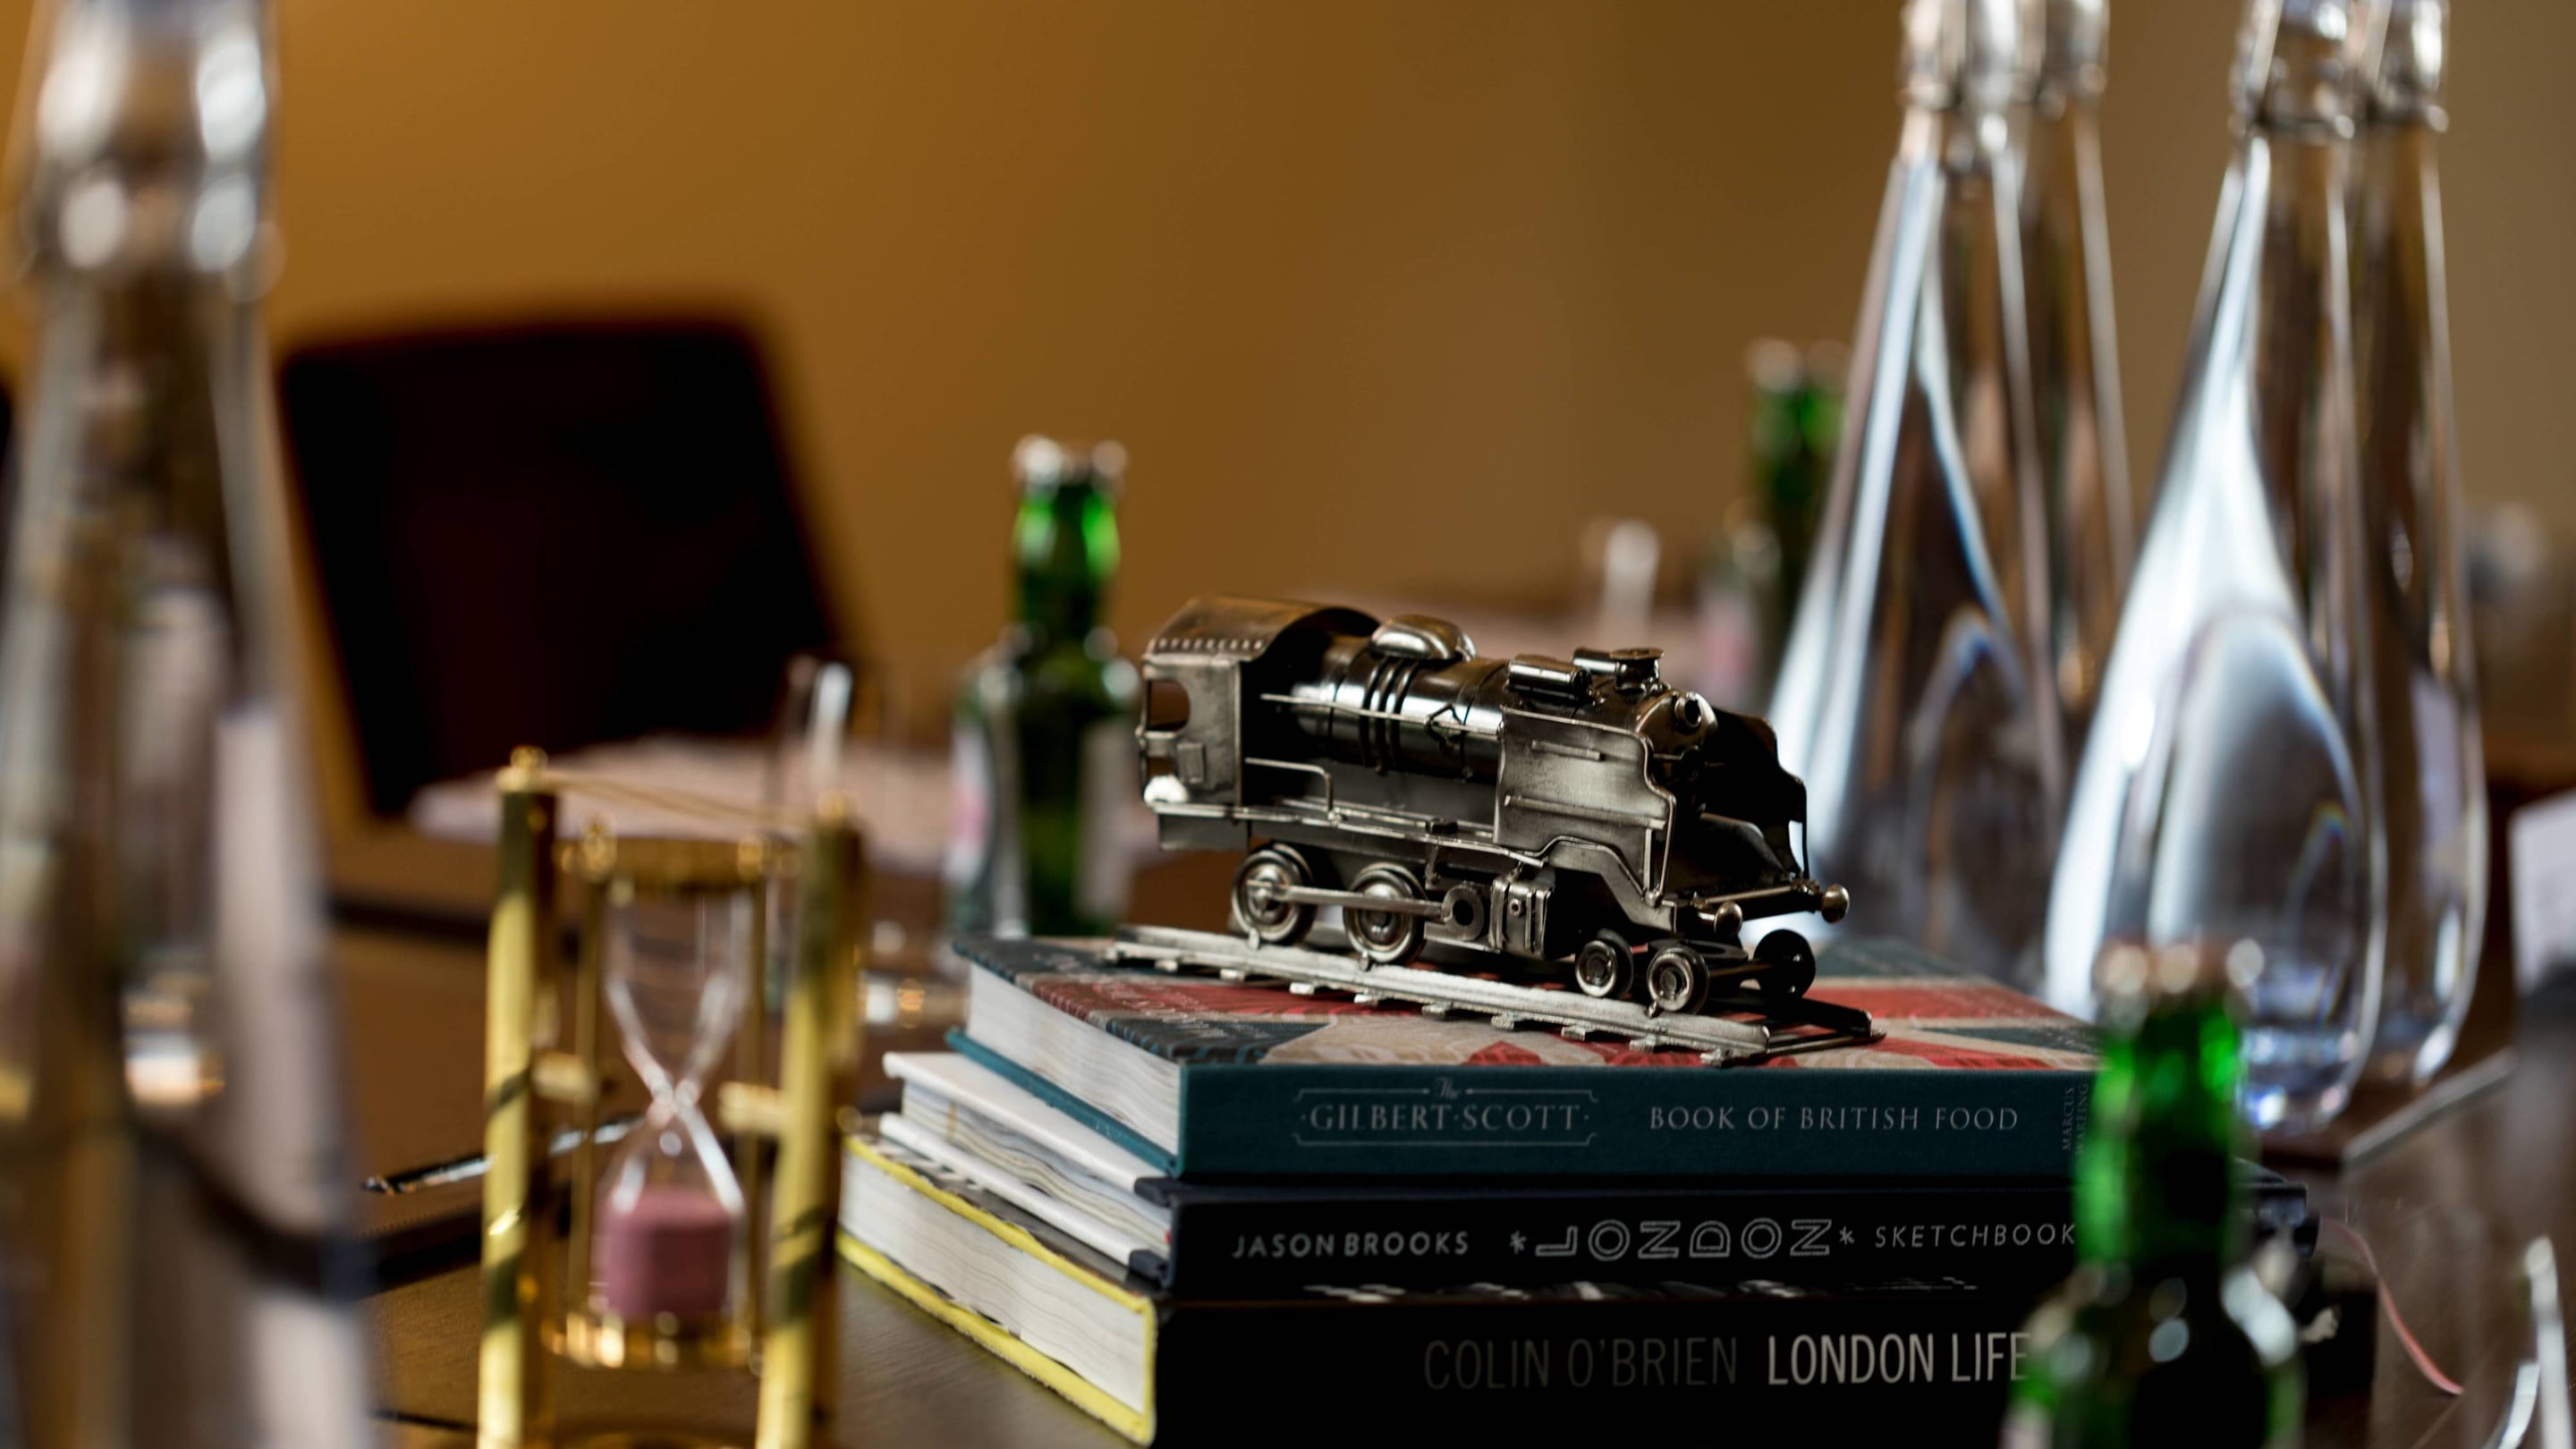 Closeup of a model train engine sitting on a stack of books.